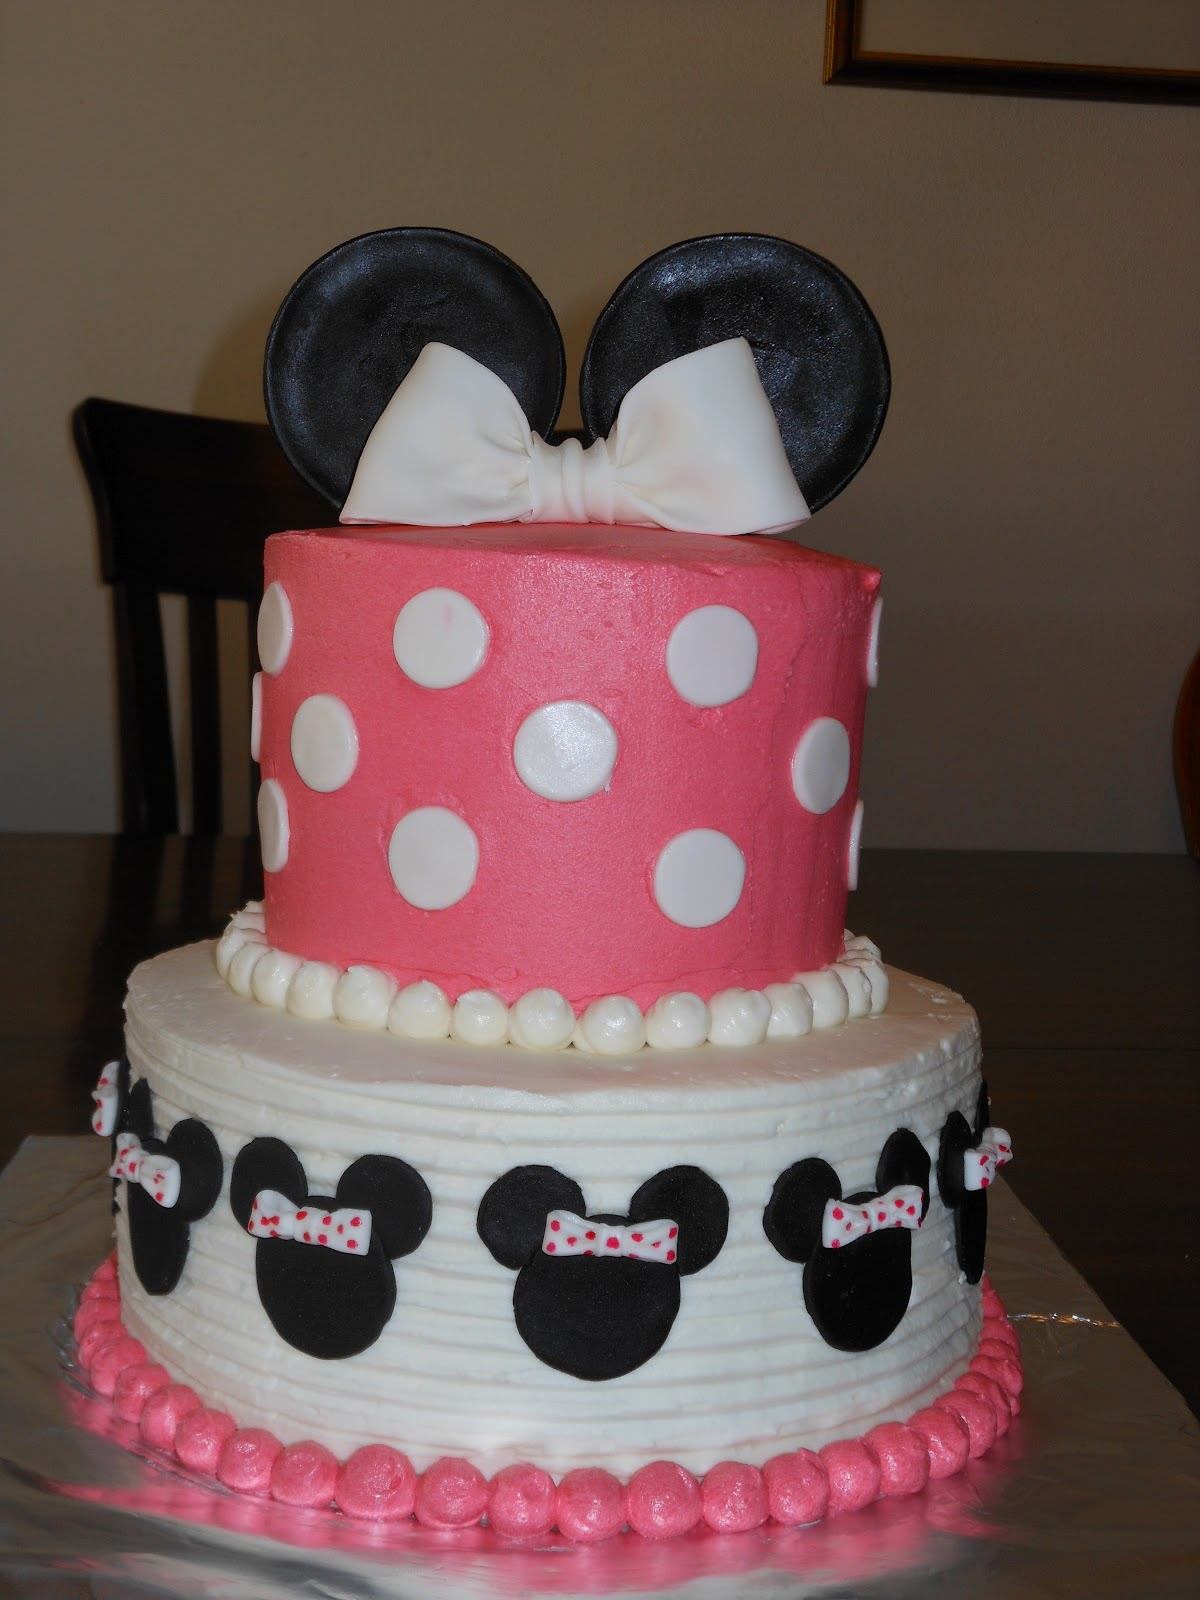 Birthday Cakes Minnie Mouse Image Inspiration of Cake and Birthday